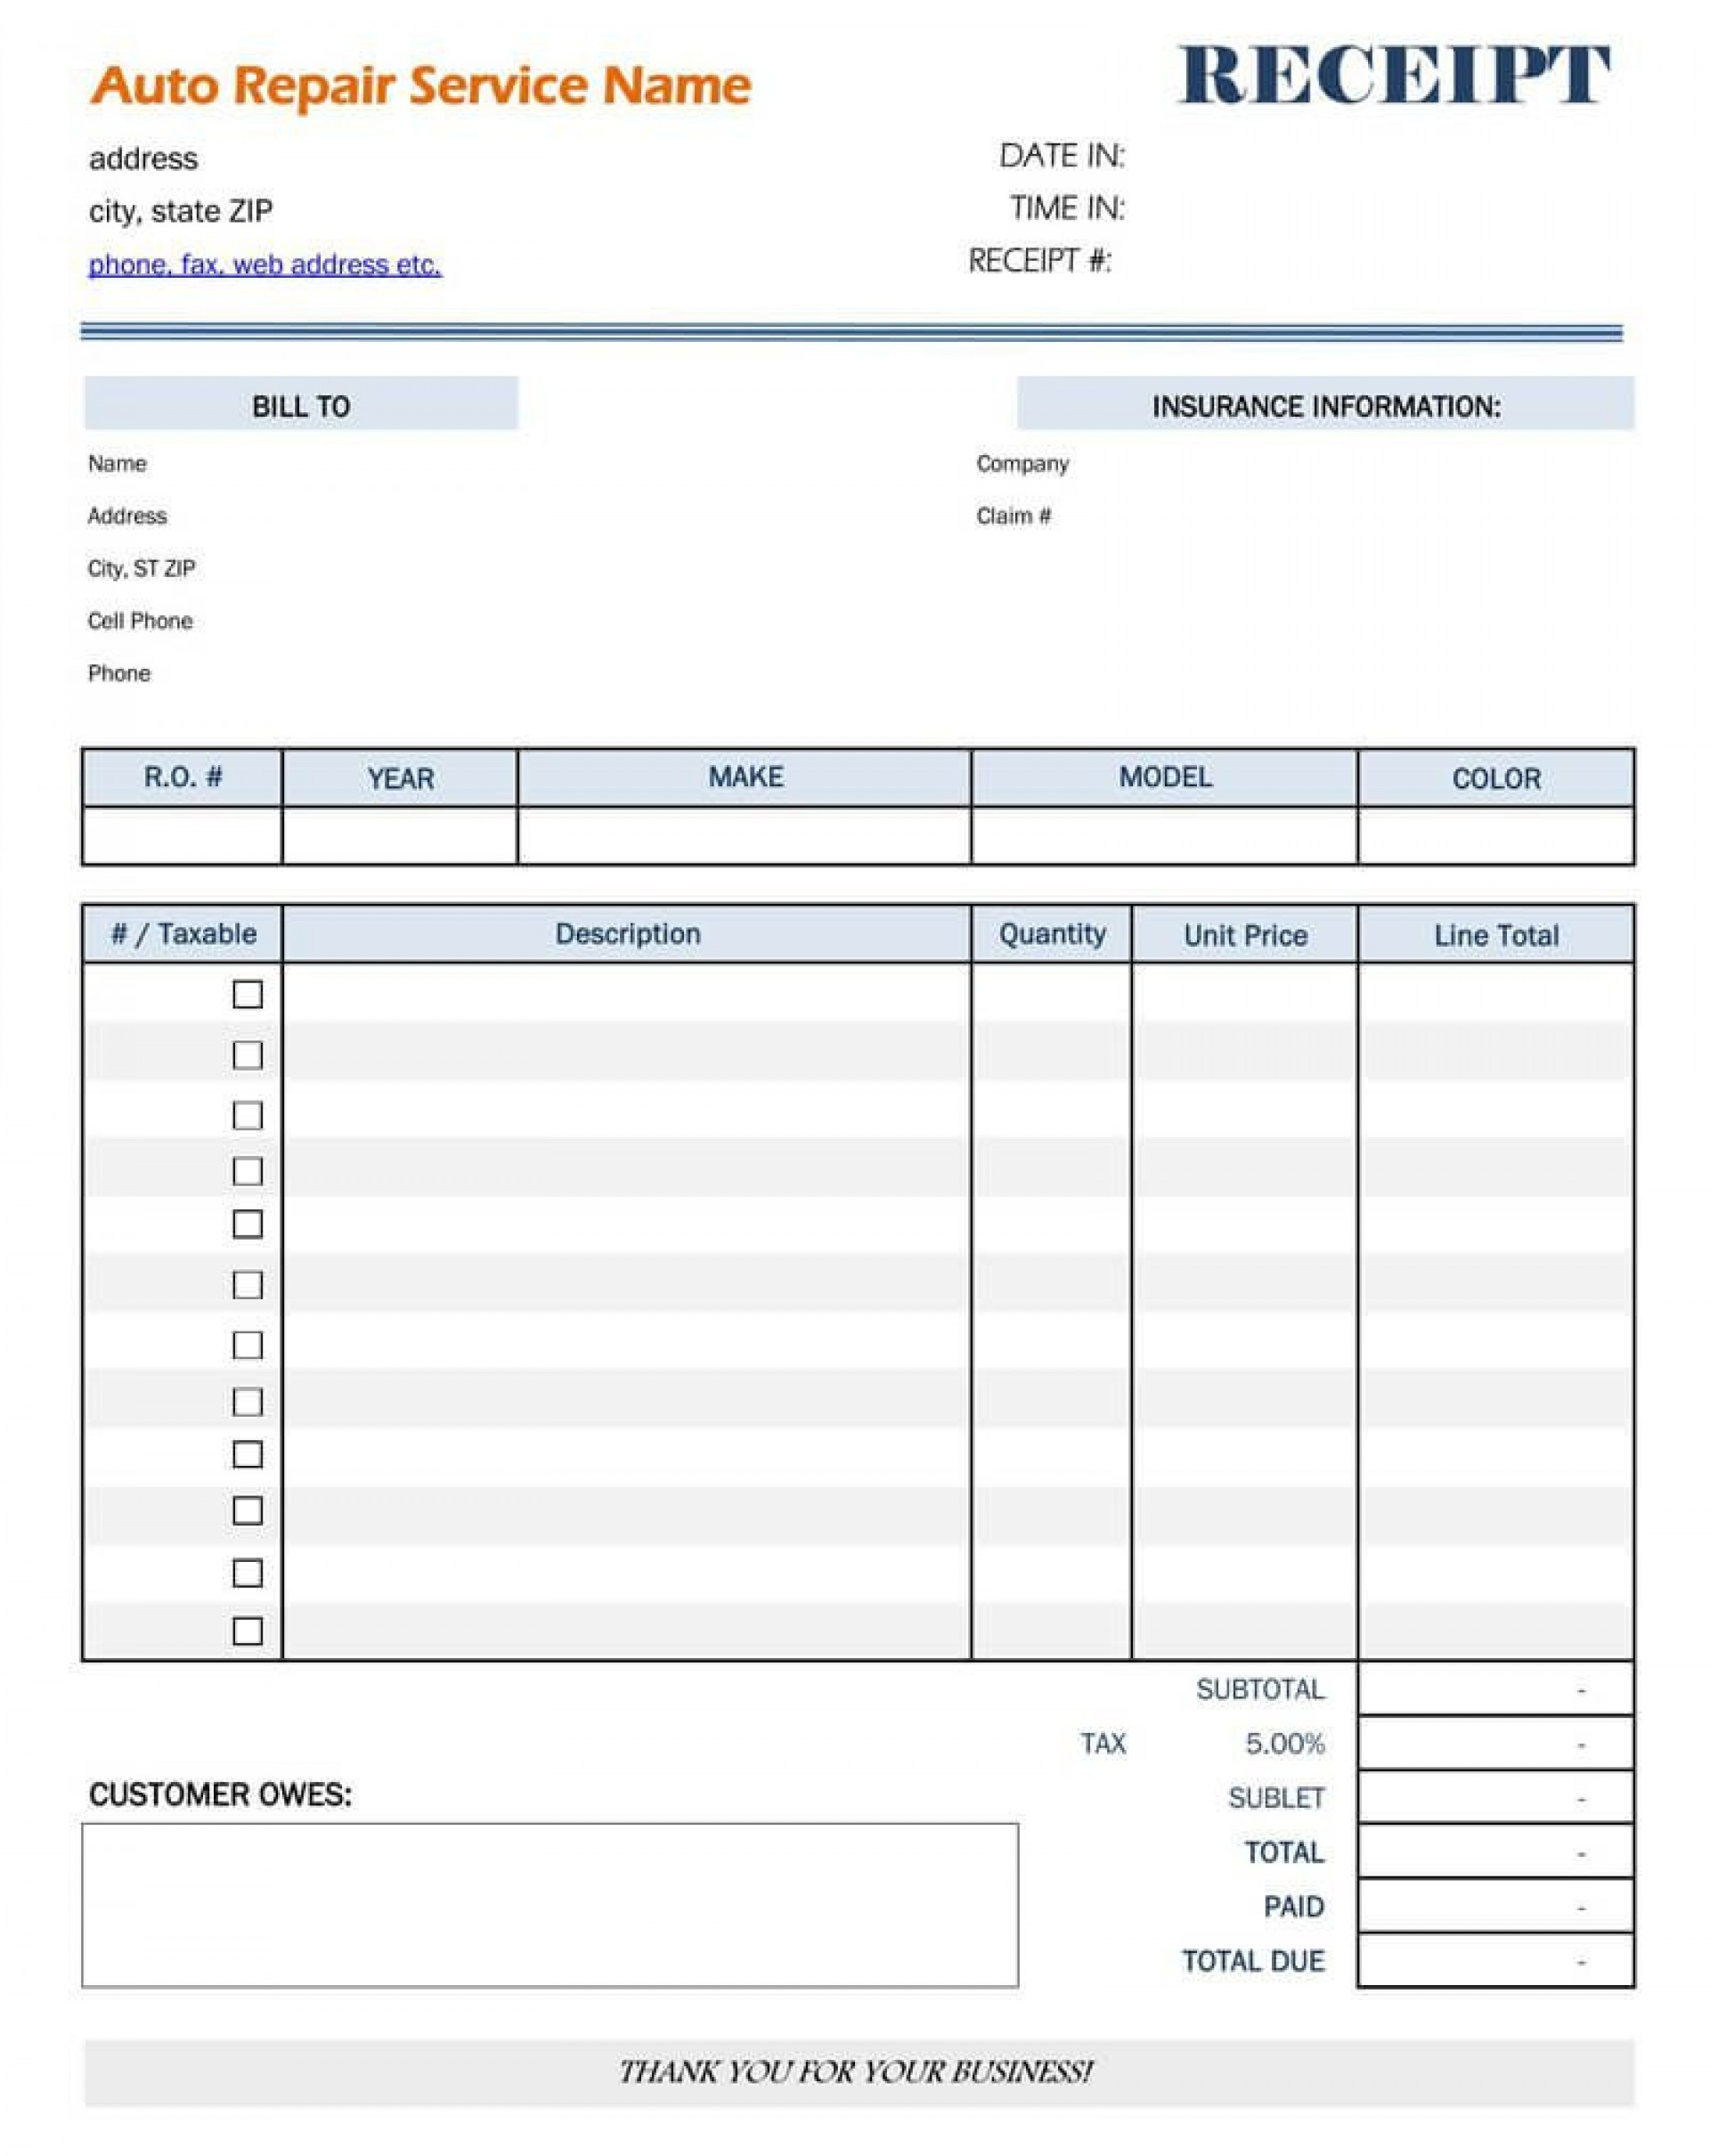 004 Remarkable Microsoft Excel Auto Repair Invoice Template High Resolution 1920